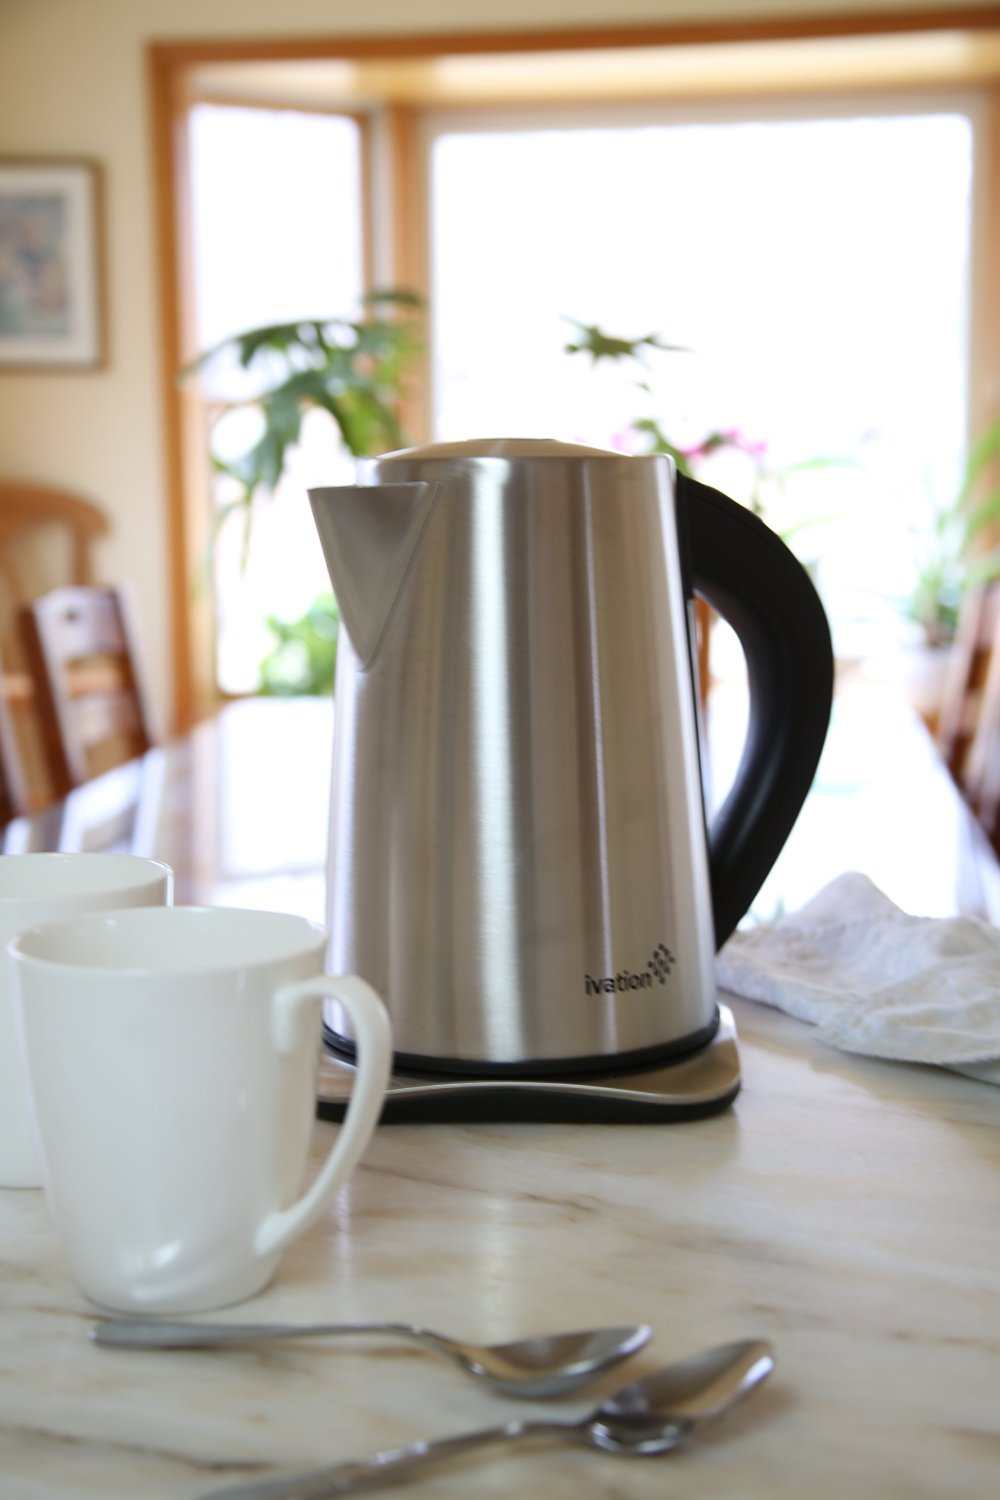 Ivation 1.7 Liter(7-Cup) Precision-Temp Stainless Steel Cordless Electric Tea Kettle IV-DEK171SS